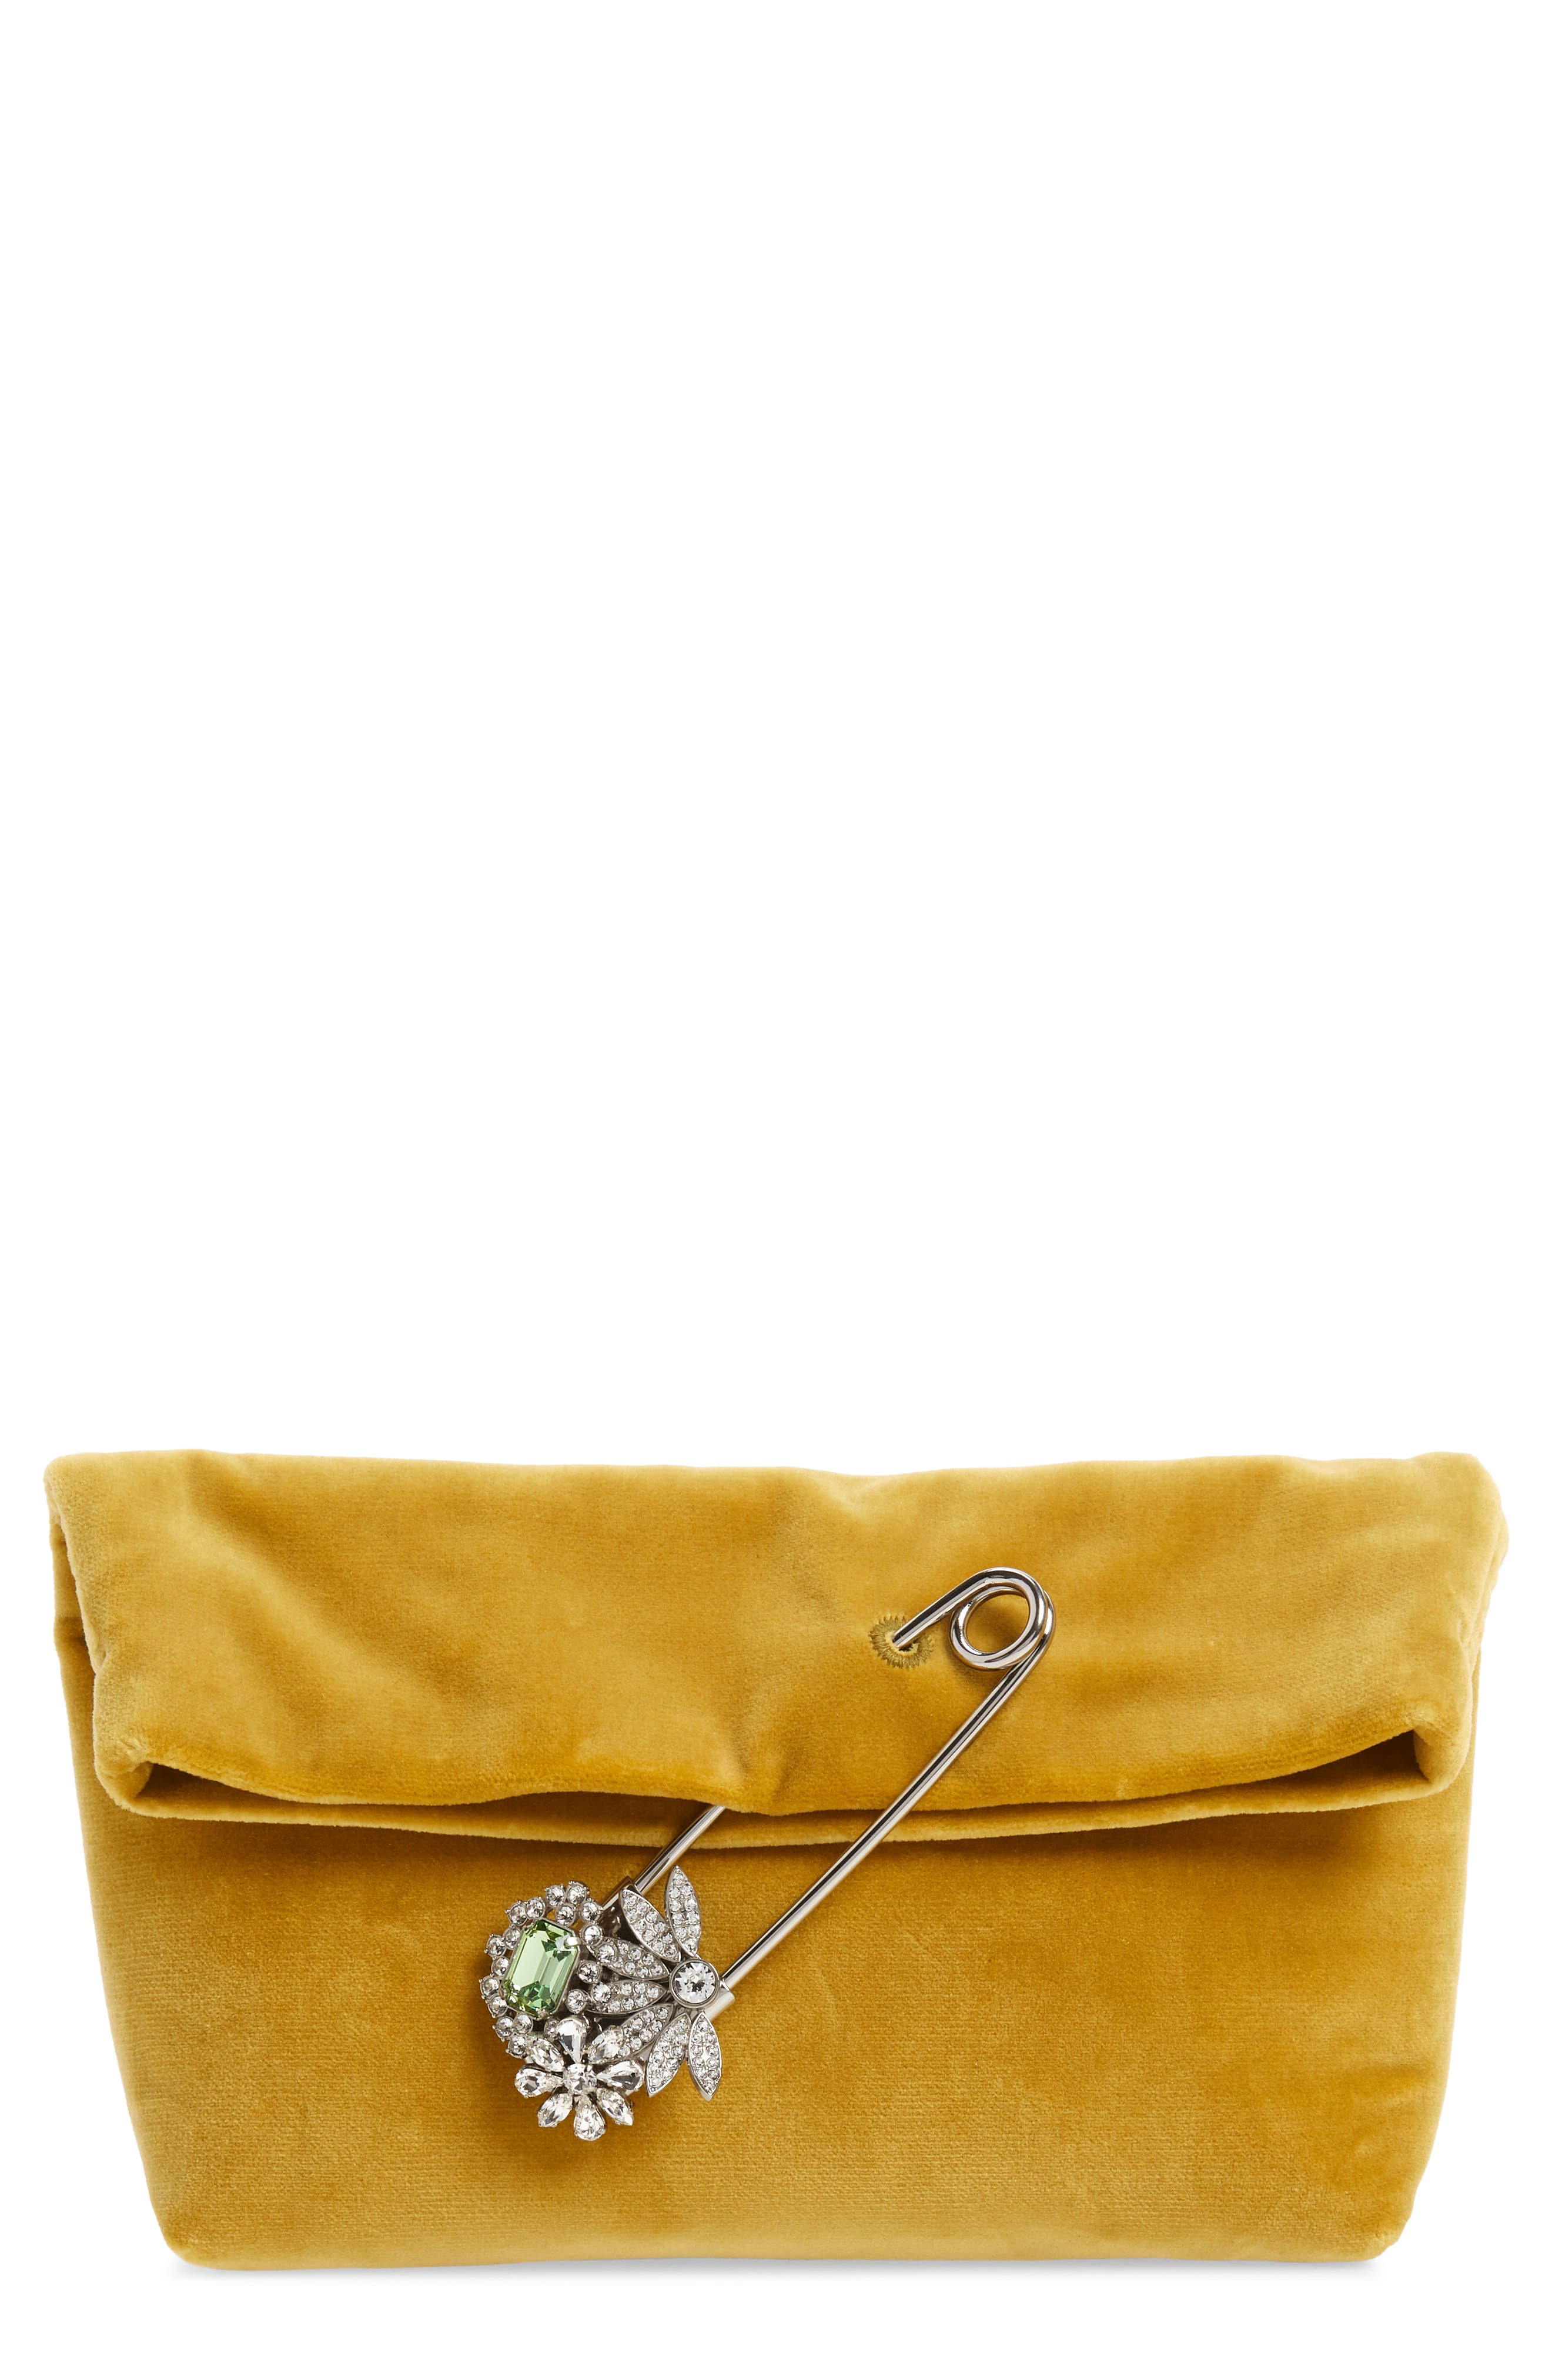 Small Safety Pin Clutch,                             Main thumbnail 1, color,                             LARCH YELLOW